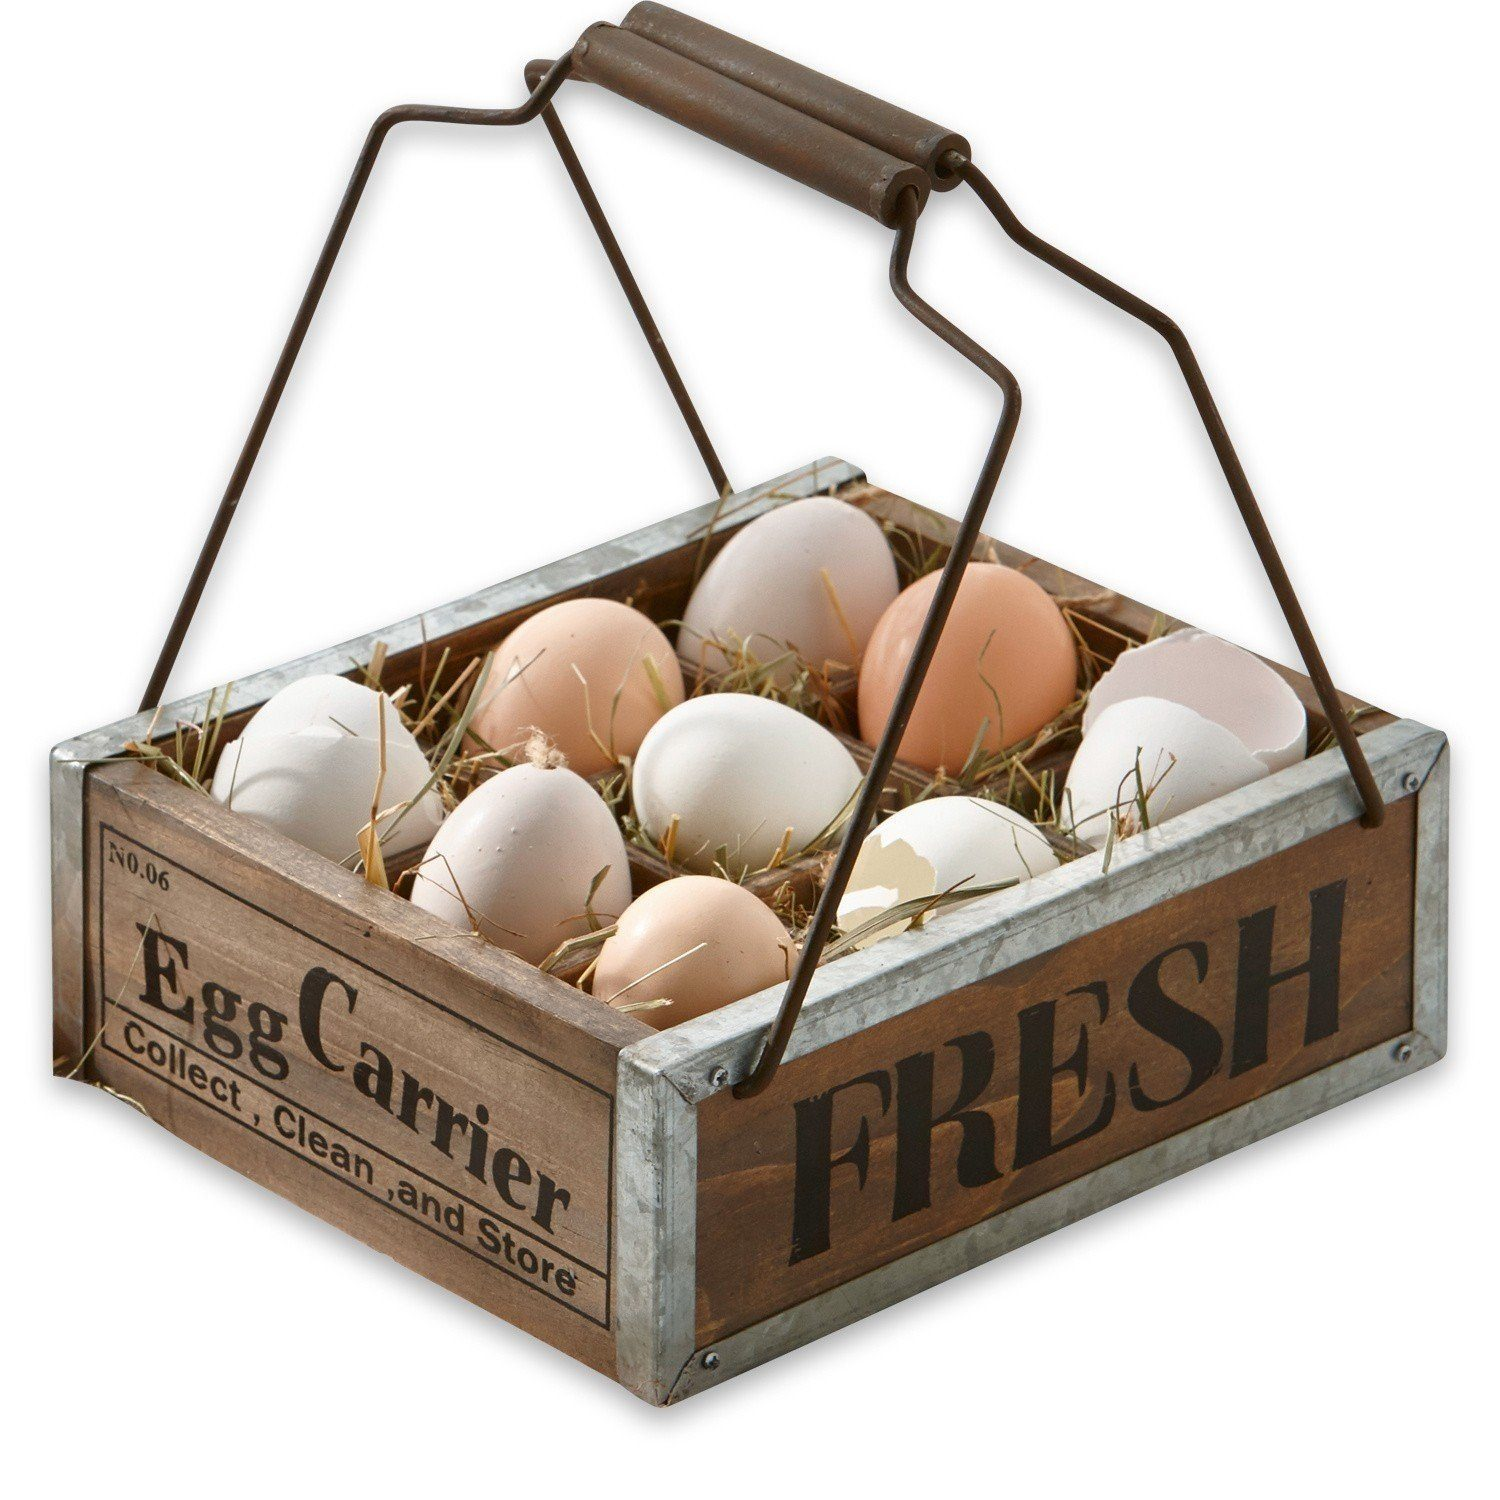 Loberon Eierkorb »Egg Carrier«